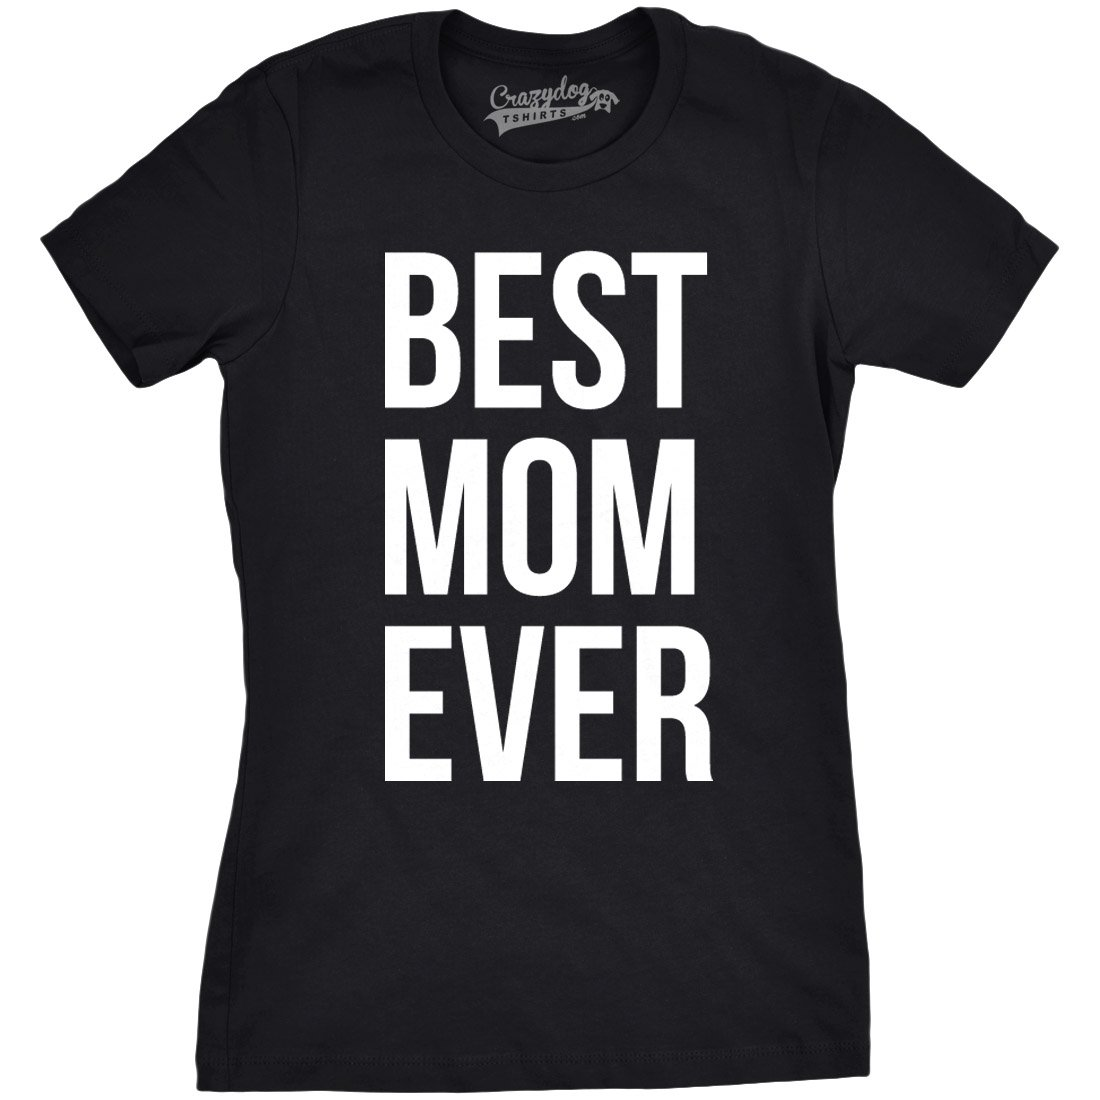 038f4a98 Amazon.com: Womens Best Mom Ever T Shirt Funny Ladies Mother Parent Tees:  Clothing